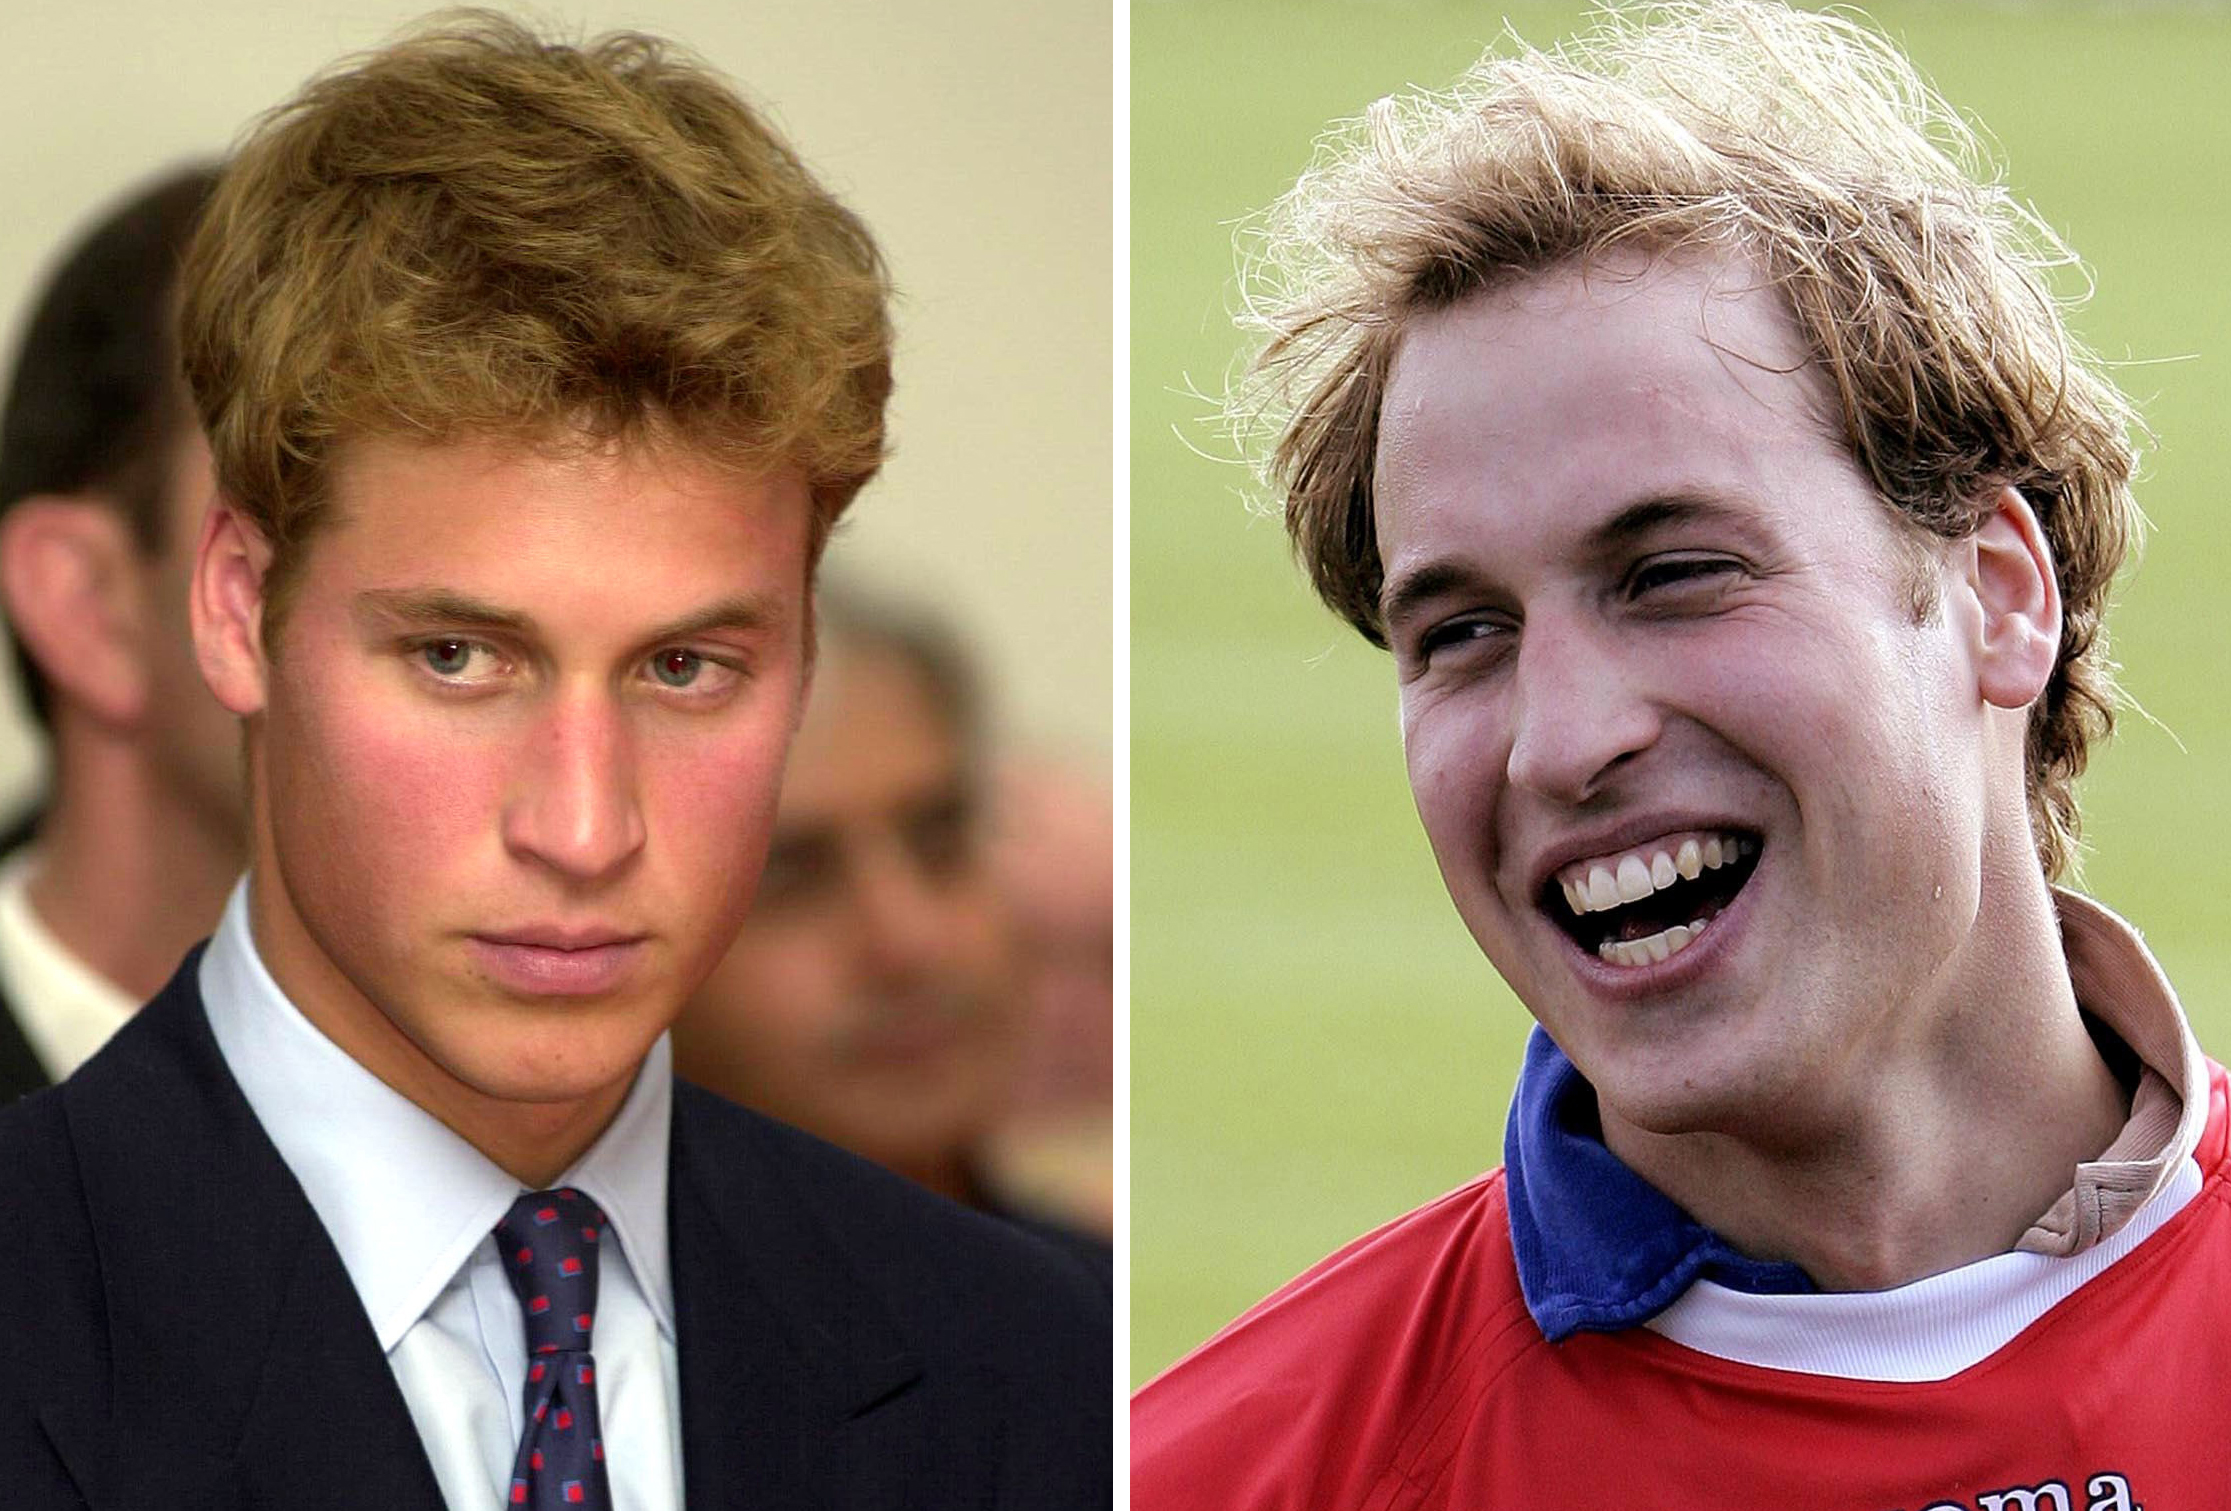 William in 2001 and 2005 (Andrew Parsons/ David Cheskin/PA)